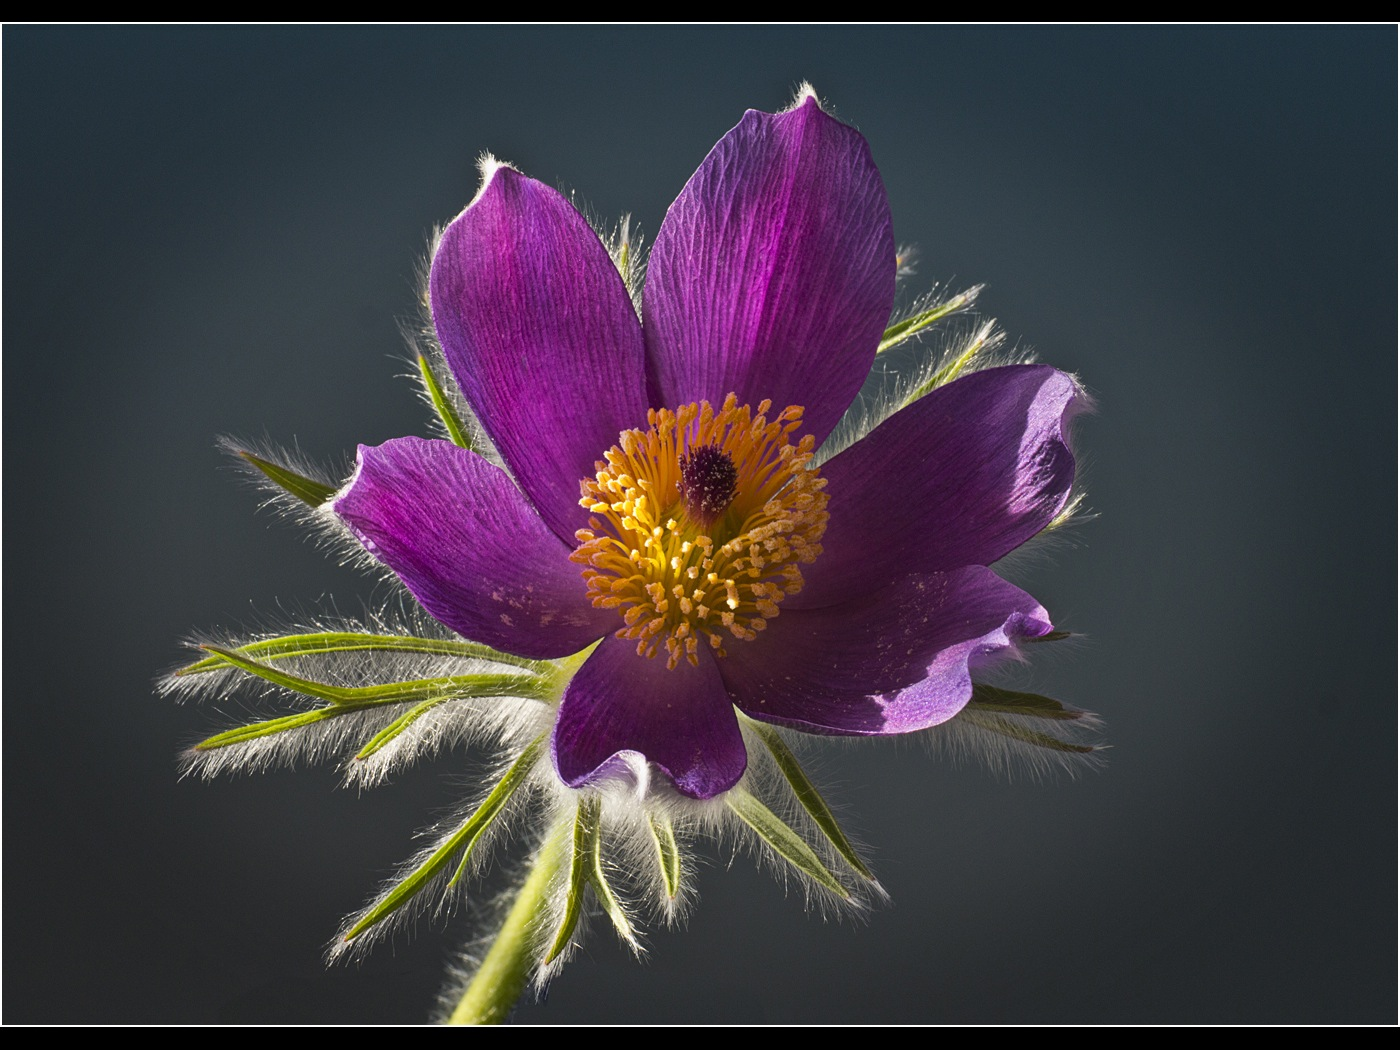 Colour Print - 2nd Place: Pulsatilla flower by Brian Farey